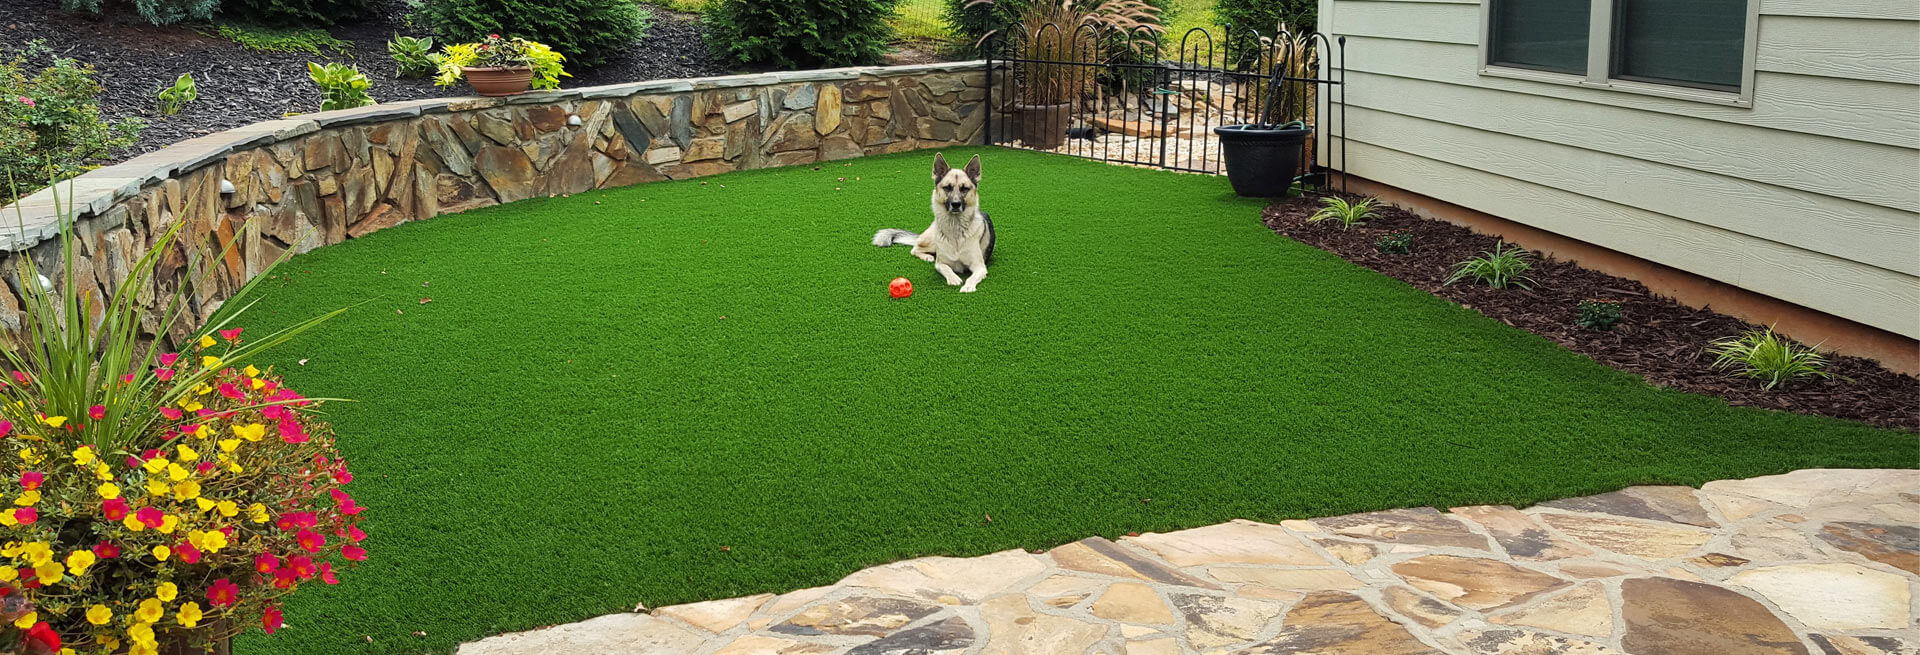 Find the perfect artificial grass product for your space click - Charlotte Nc Artificial Grass Amp Putting Greens Synlawn